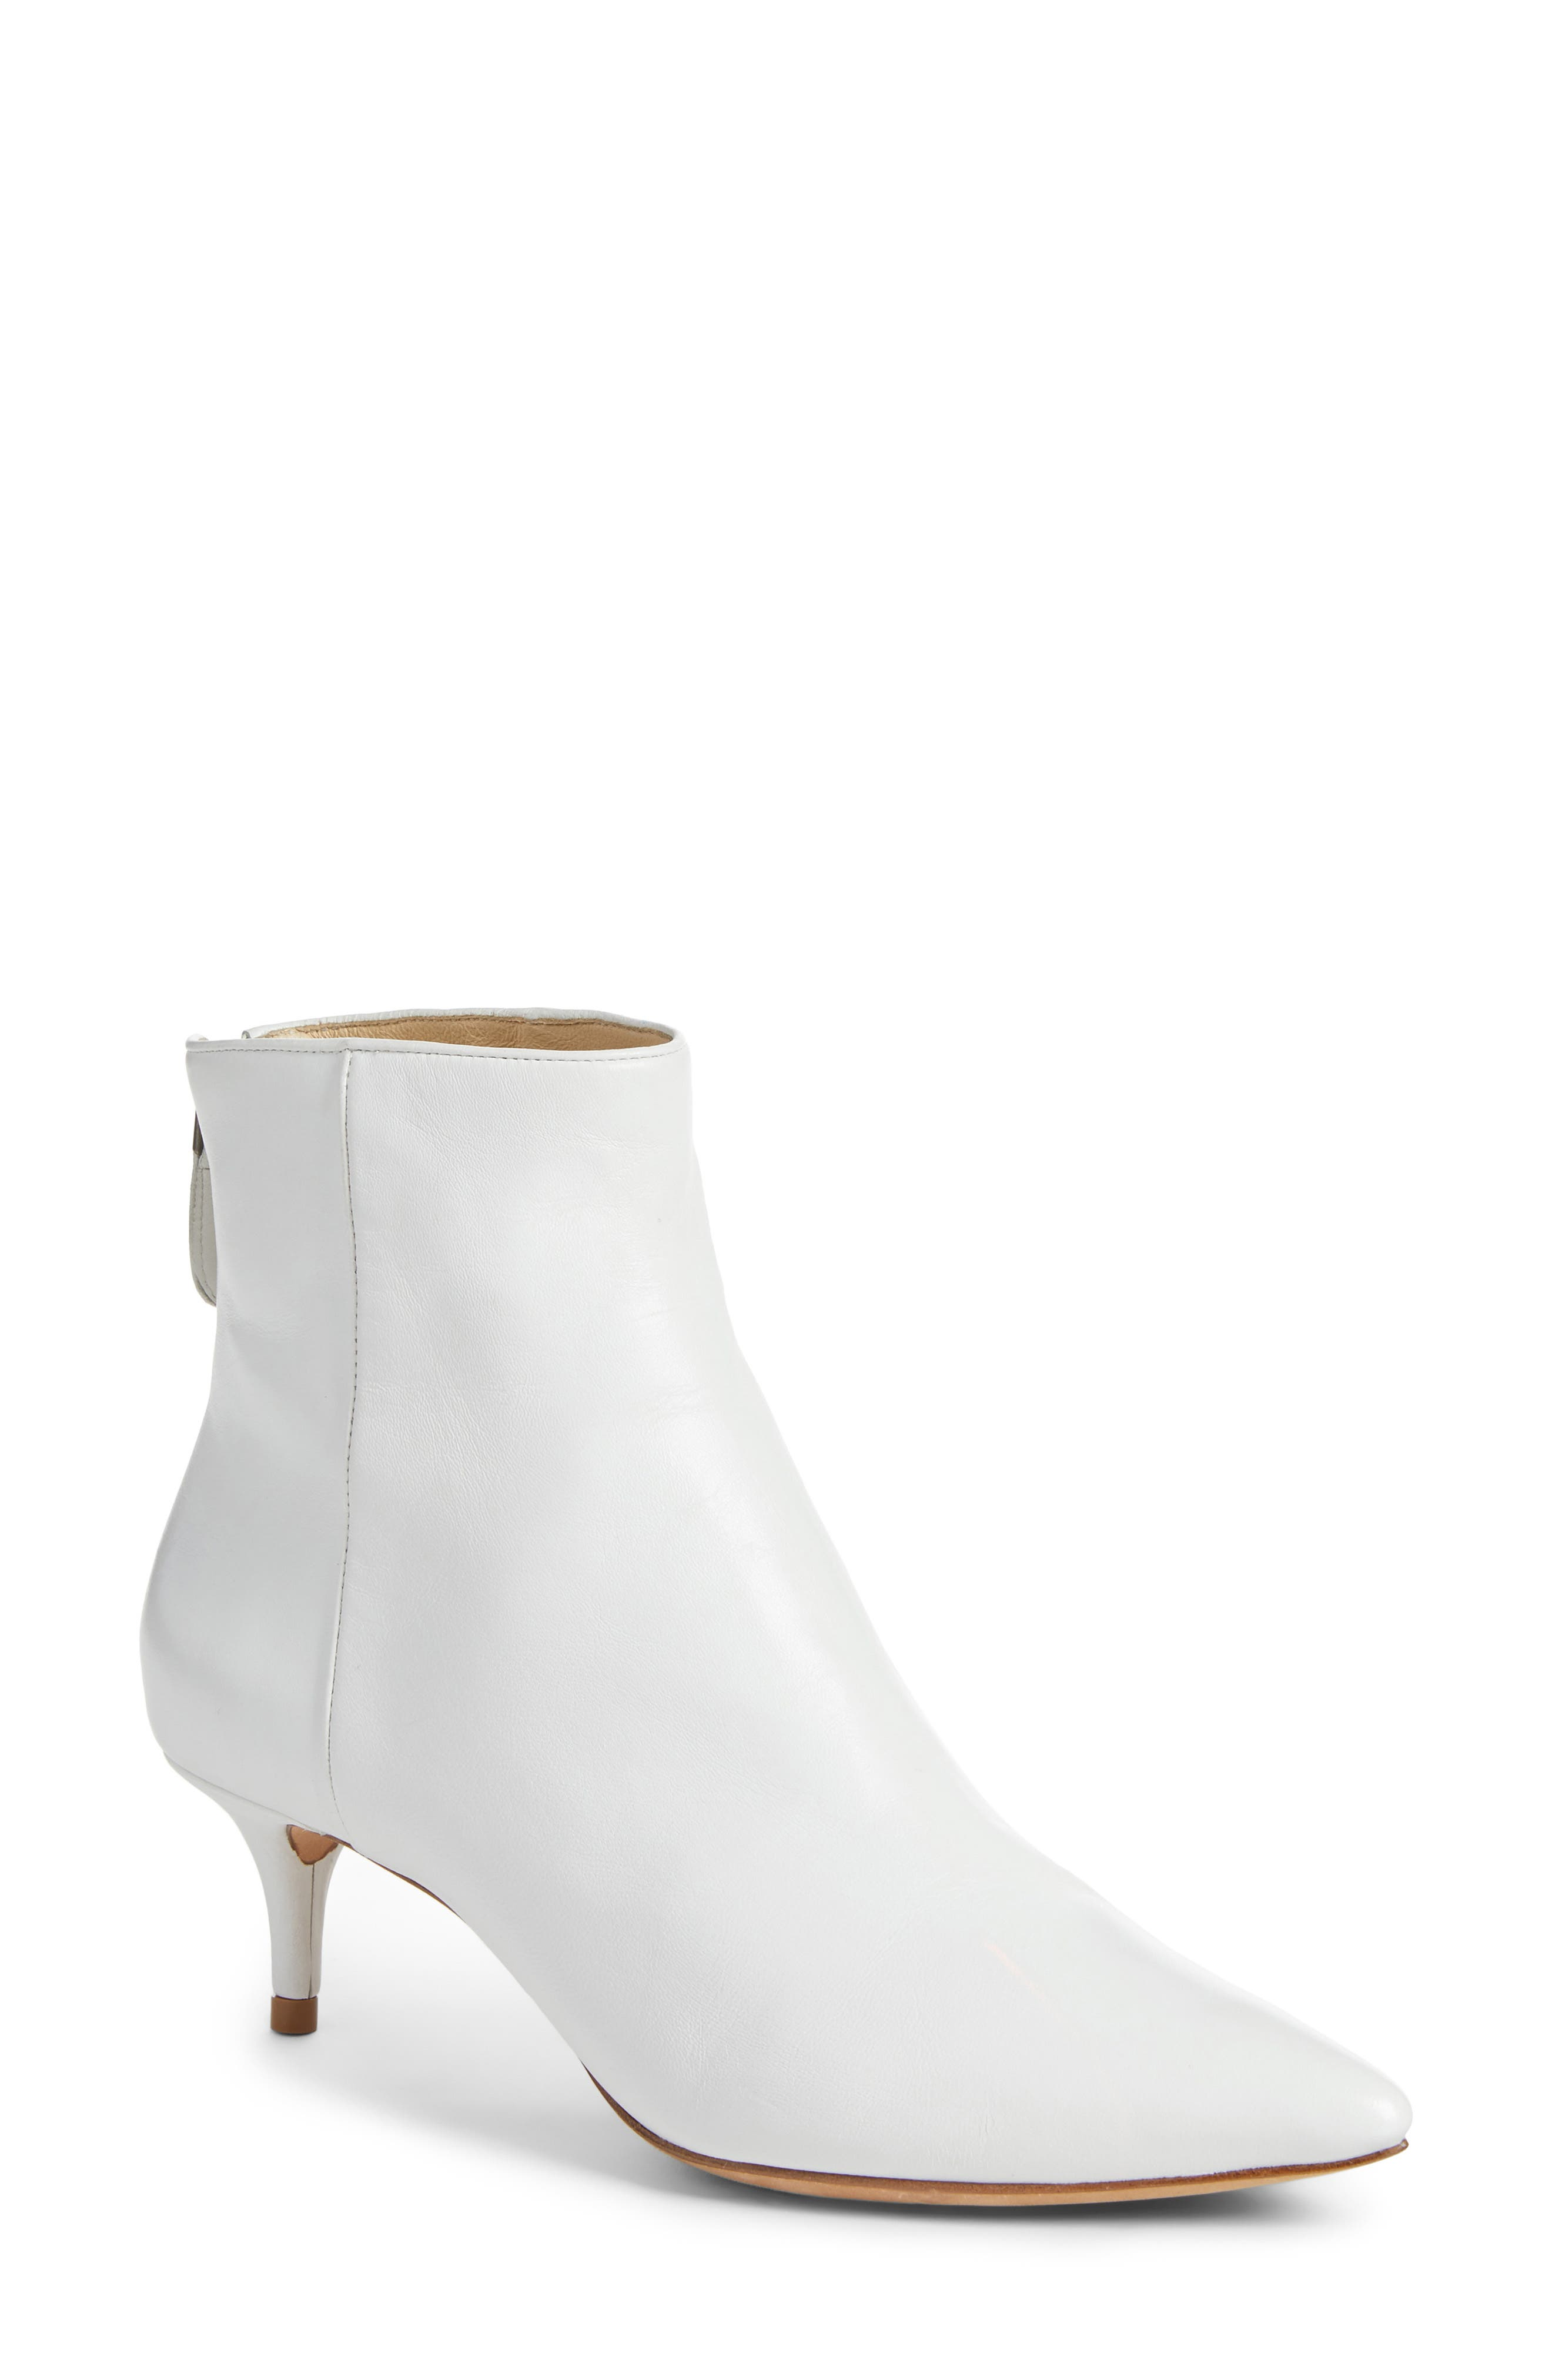 Kittie Pointy Toe Bootie,                         Main,                         color, White